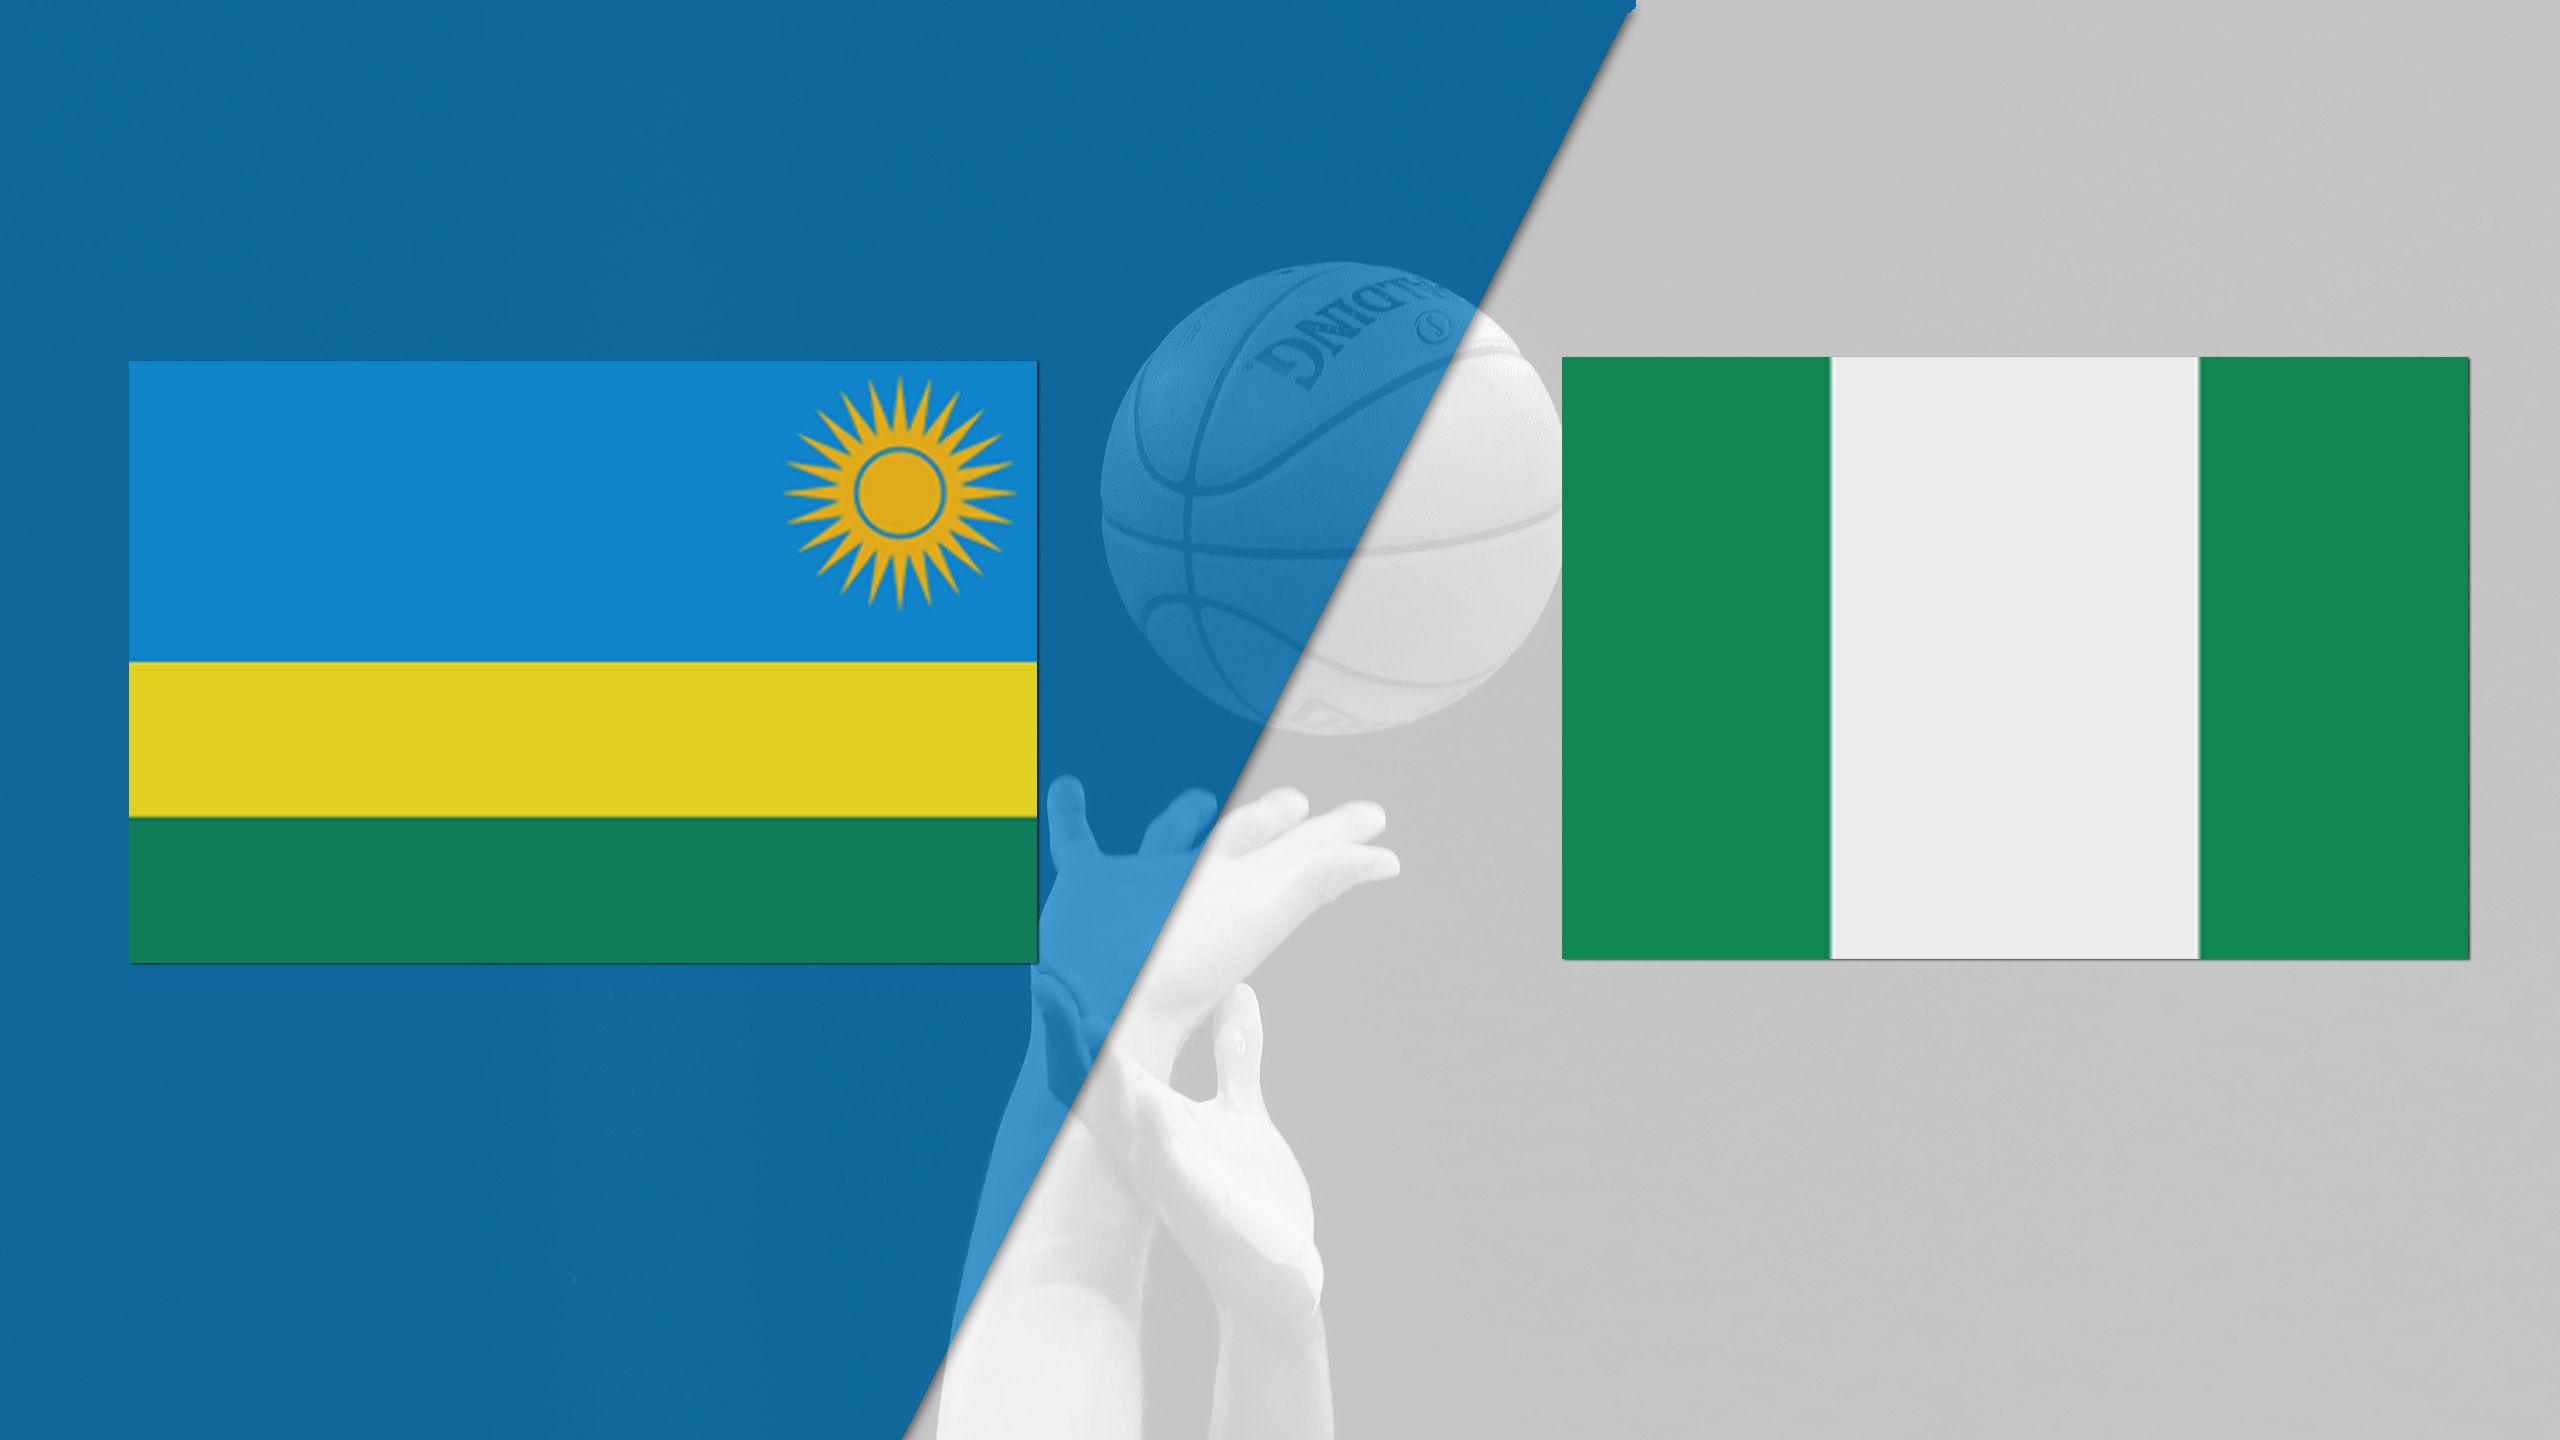 Rwanda vs. Nigeria (FIBA World Cup 2019 Qualifier)